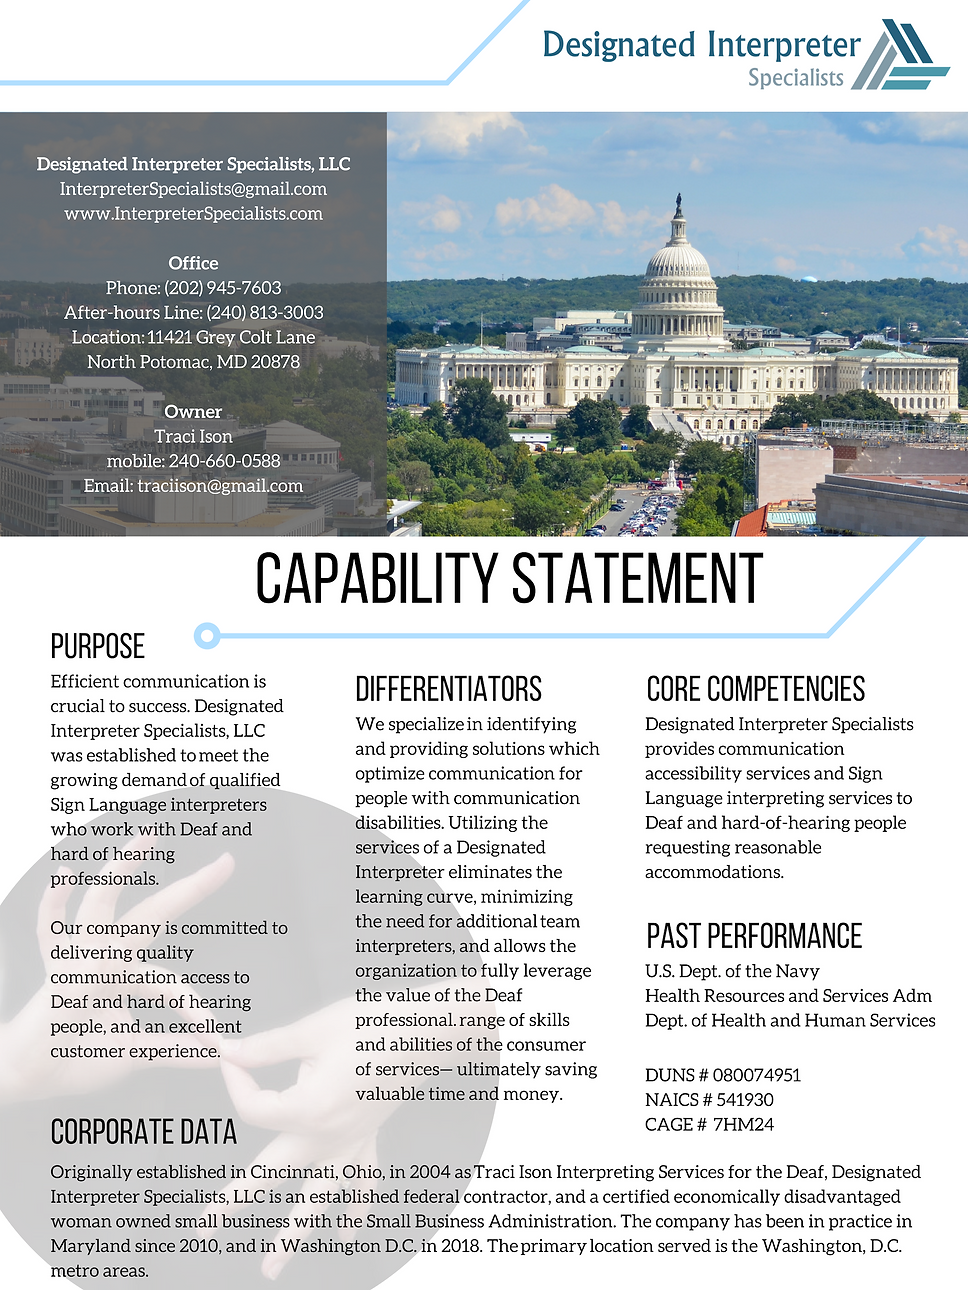 Capability Statement DIS 2019.png